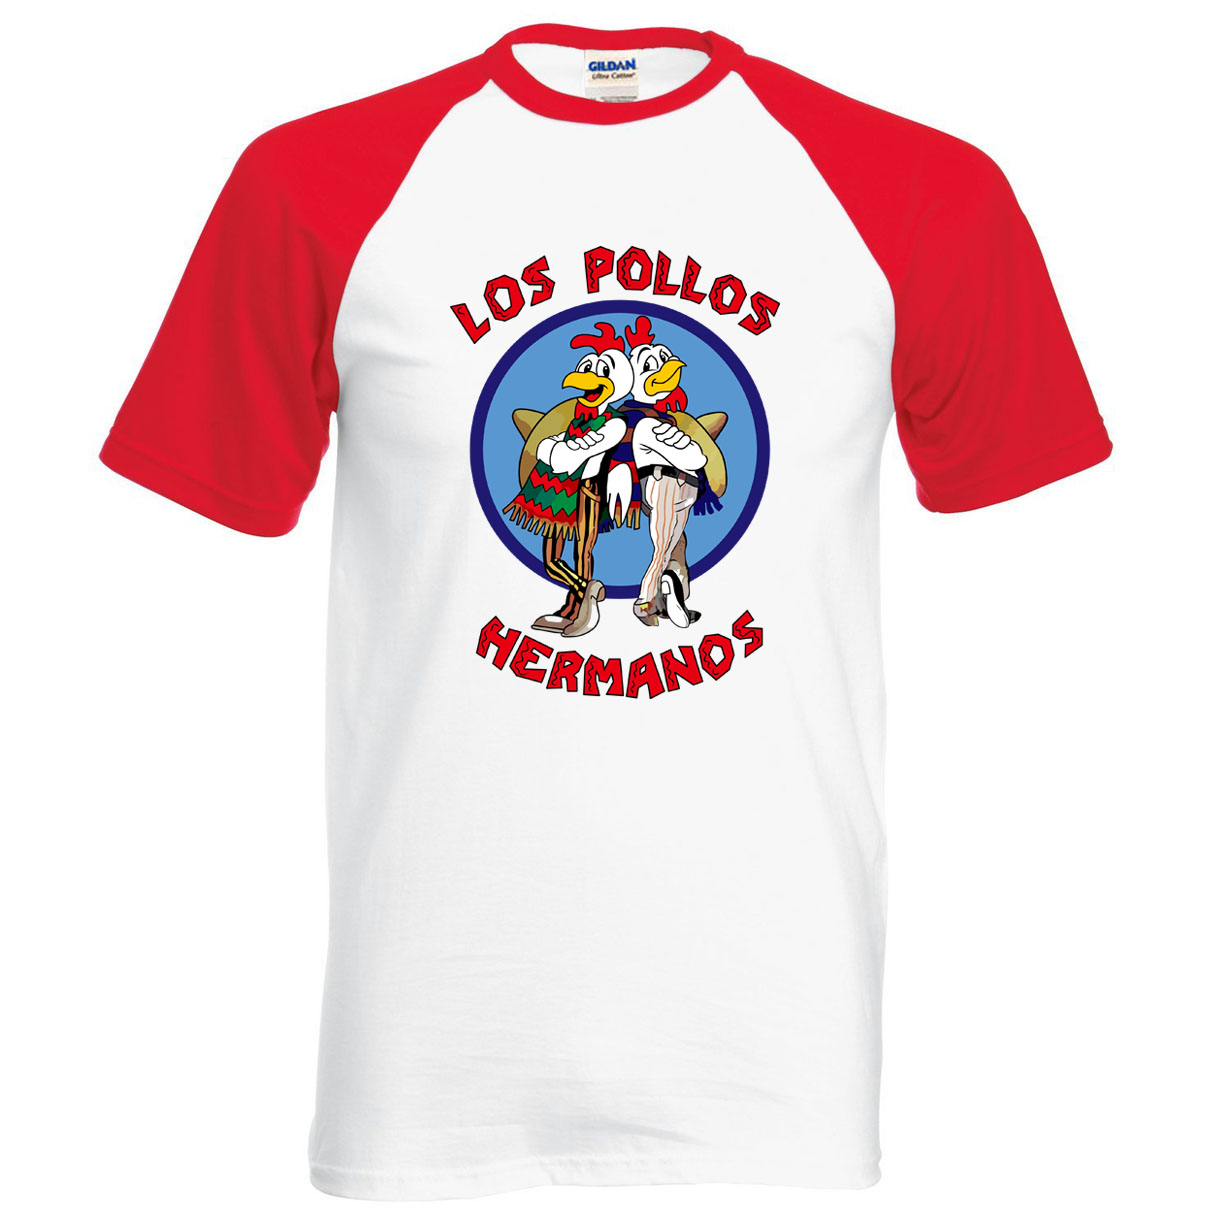 Breaking Bad Shirt LOS POLLOS Hermanos T Shirt Chicken Brothers 2019 hot sale summer 100% cotton fashion raglan tee for fans(China)